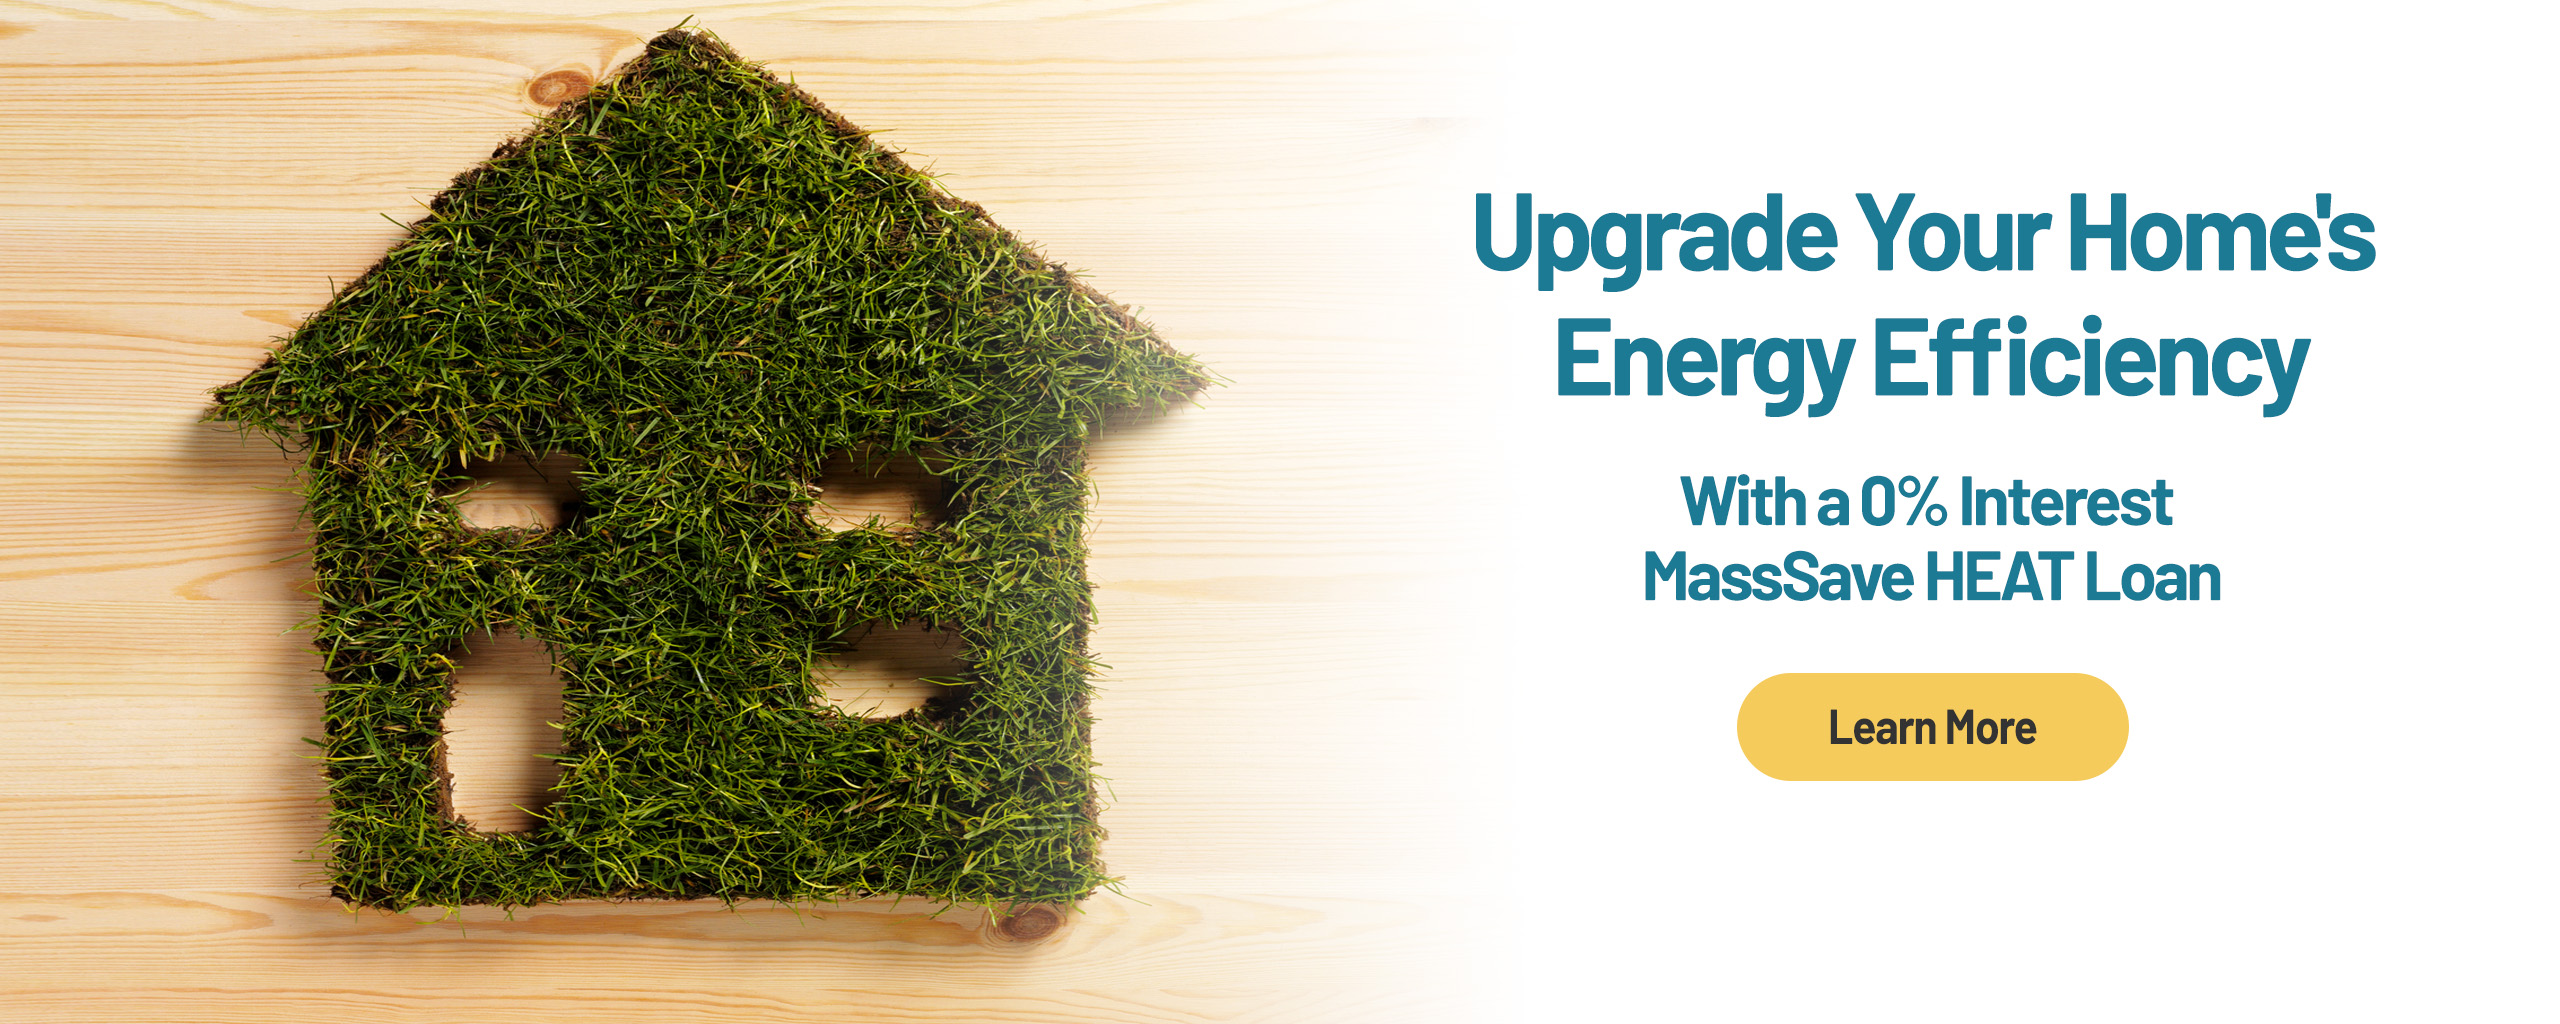 Upgrade your home's energy efficiency